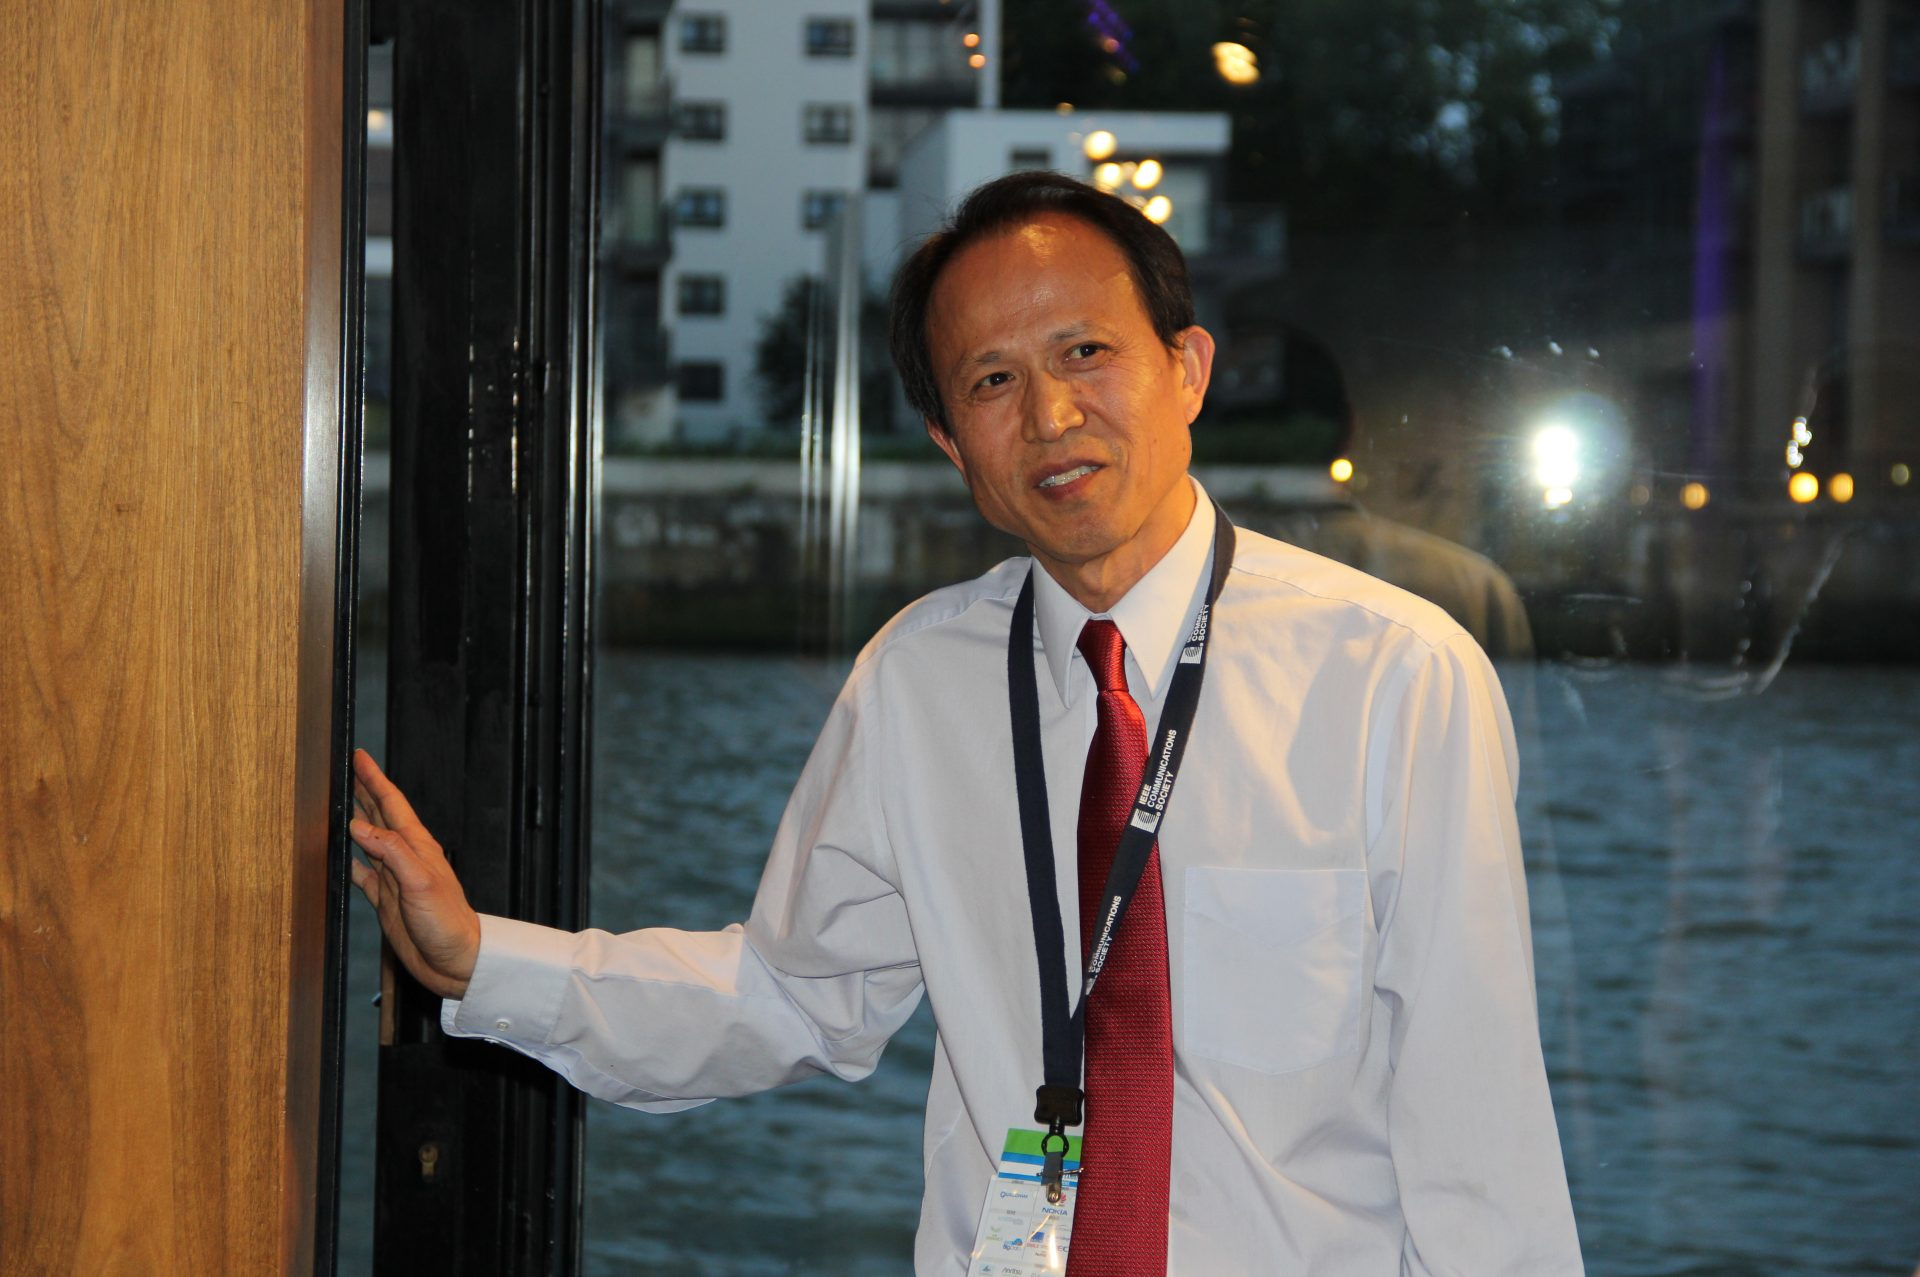 Professor Jiangzhou Wang made a Fellow of the Royal Academy of Engineering